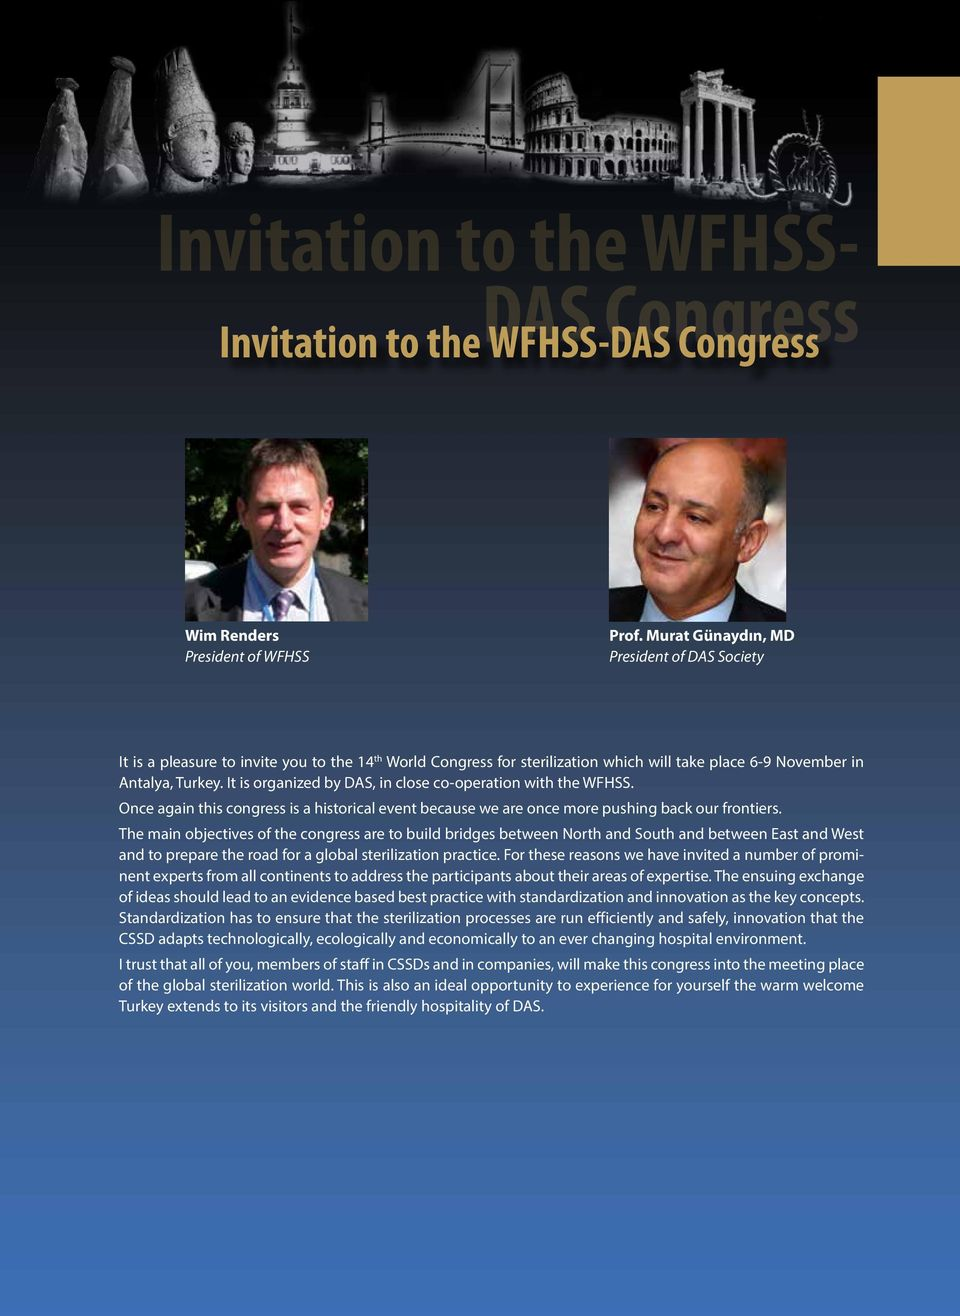 It is organized by DAS, in close co-operation with the WFHSS. Once again this congress is a historical event because we are once more pushing back our frontiers.